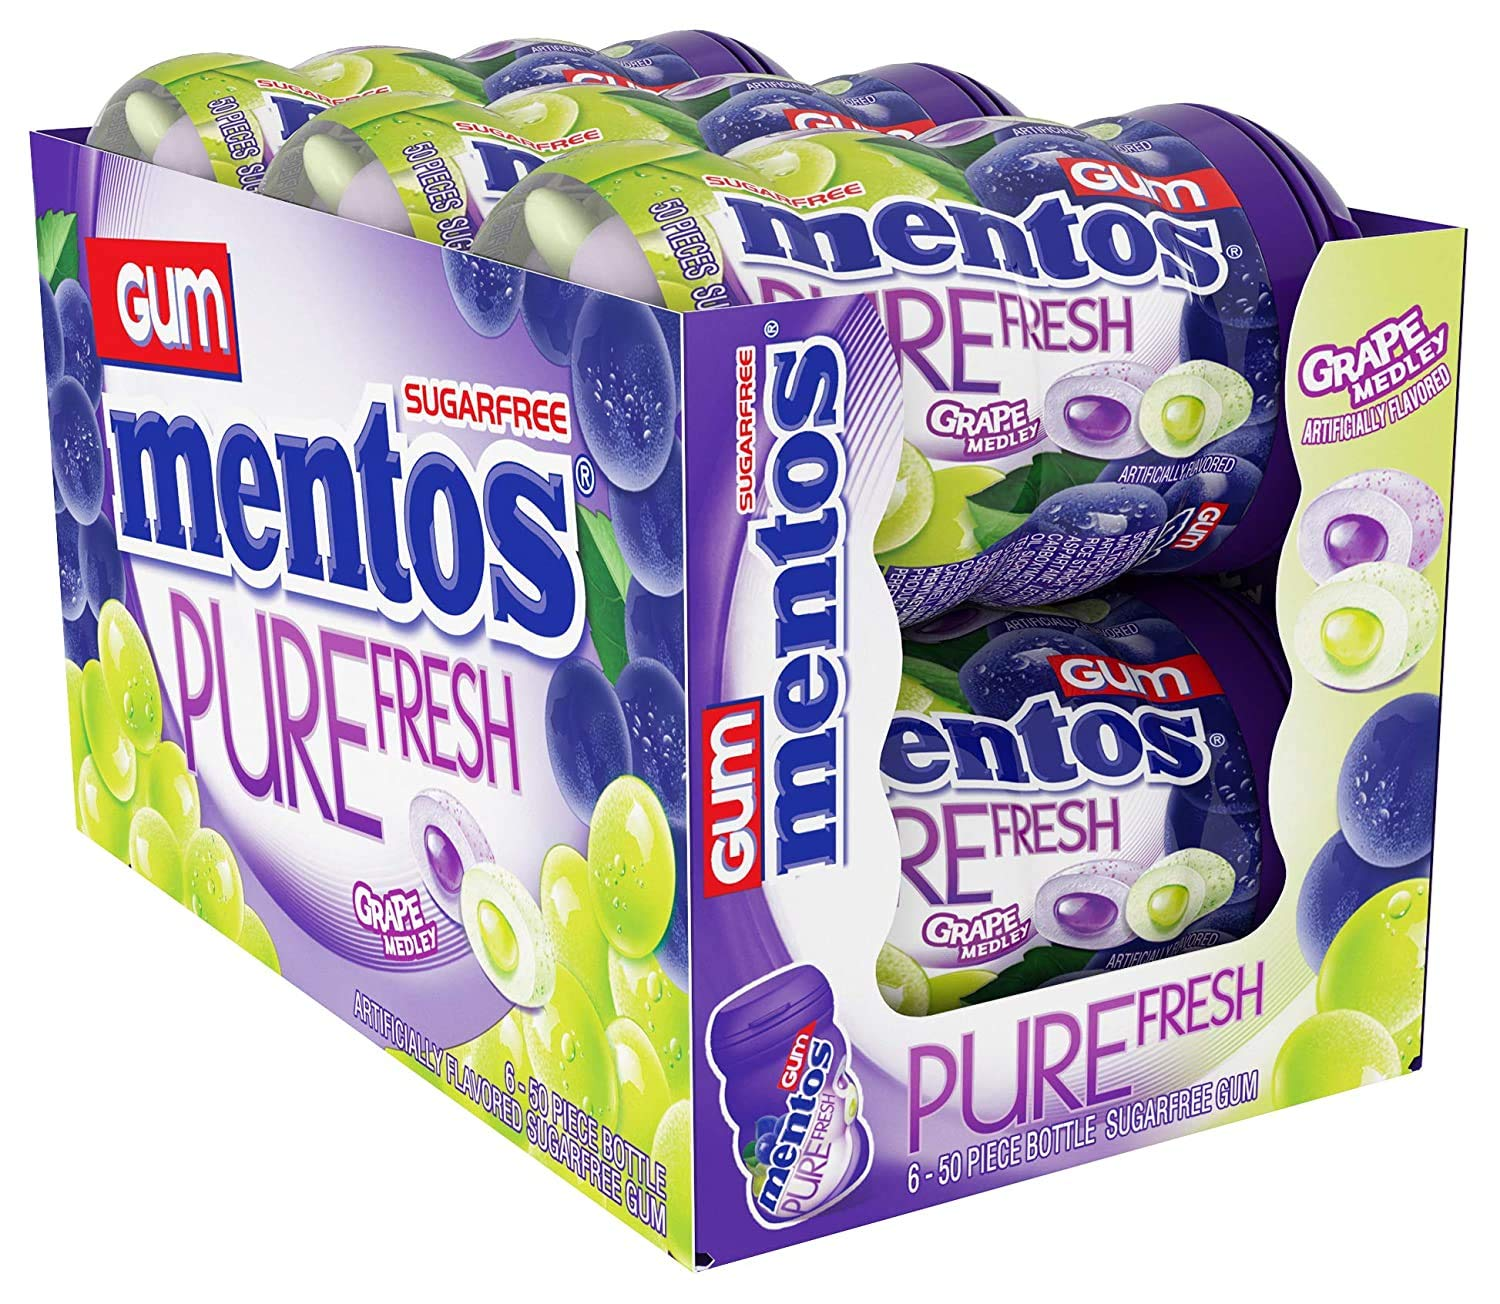 Mentos Pure Fresh Sugar-Free Chewing Gum with Xylitol, Grape Medley, 50 Piece Bottle (Bulk Pack of 6)